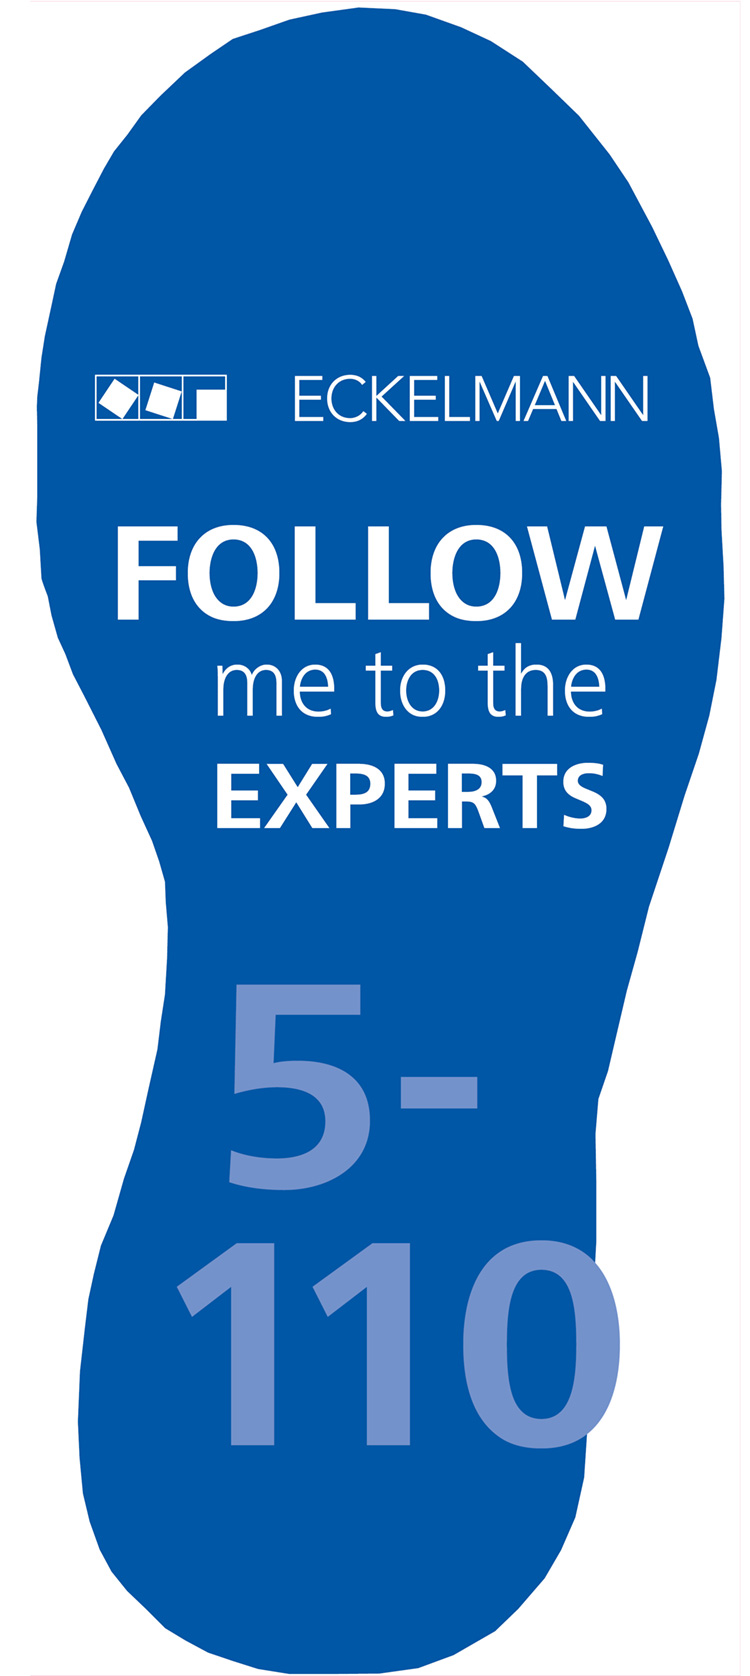 Fußspur: Follow me to the experts, Chillventa 2018, Halle 5, Stand 5-110